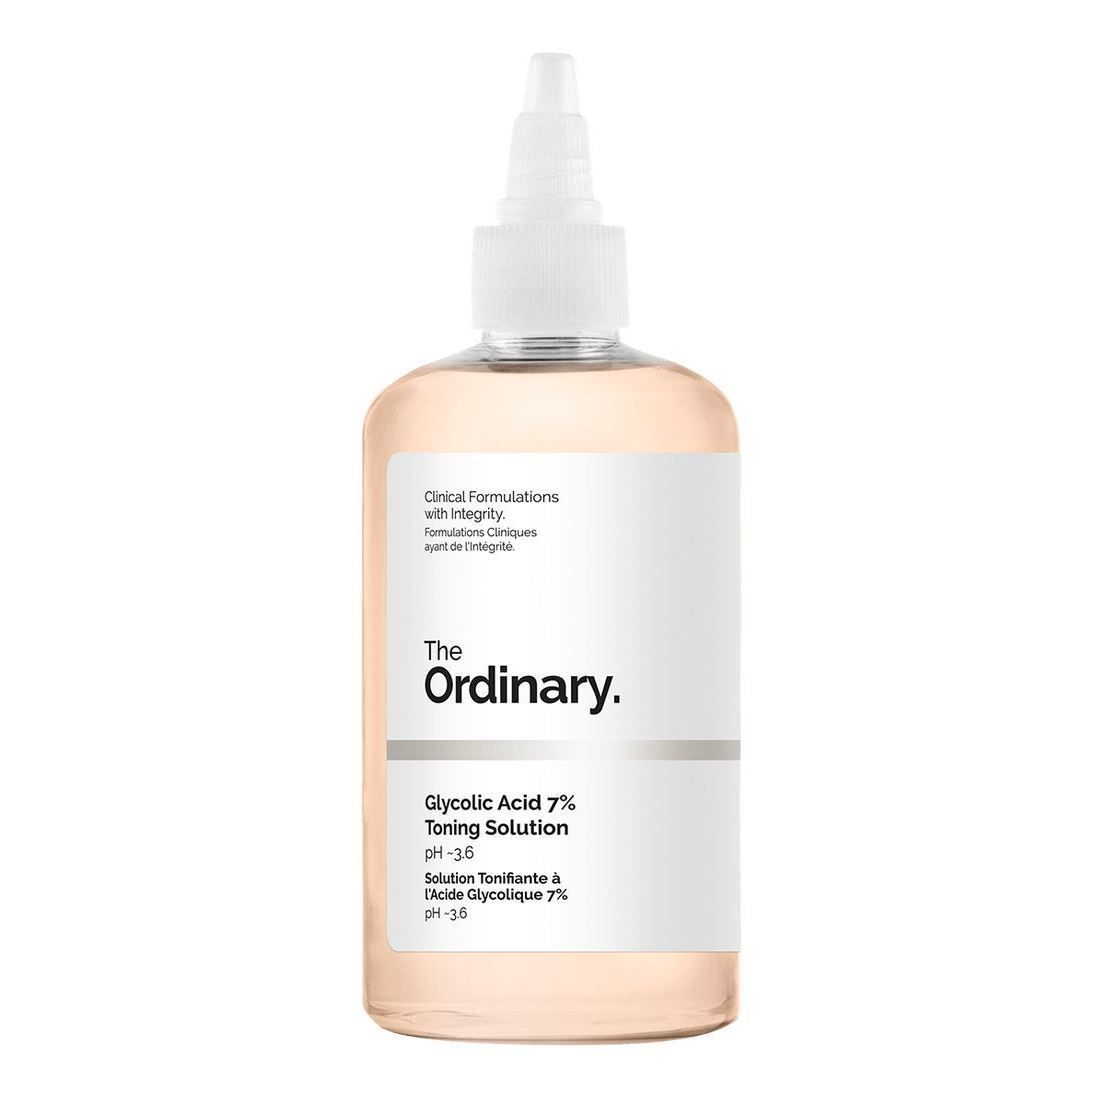 Glycolic acid 7% Toning Solution by the ordinary #6